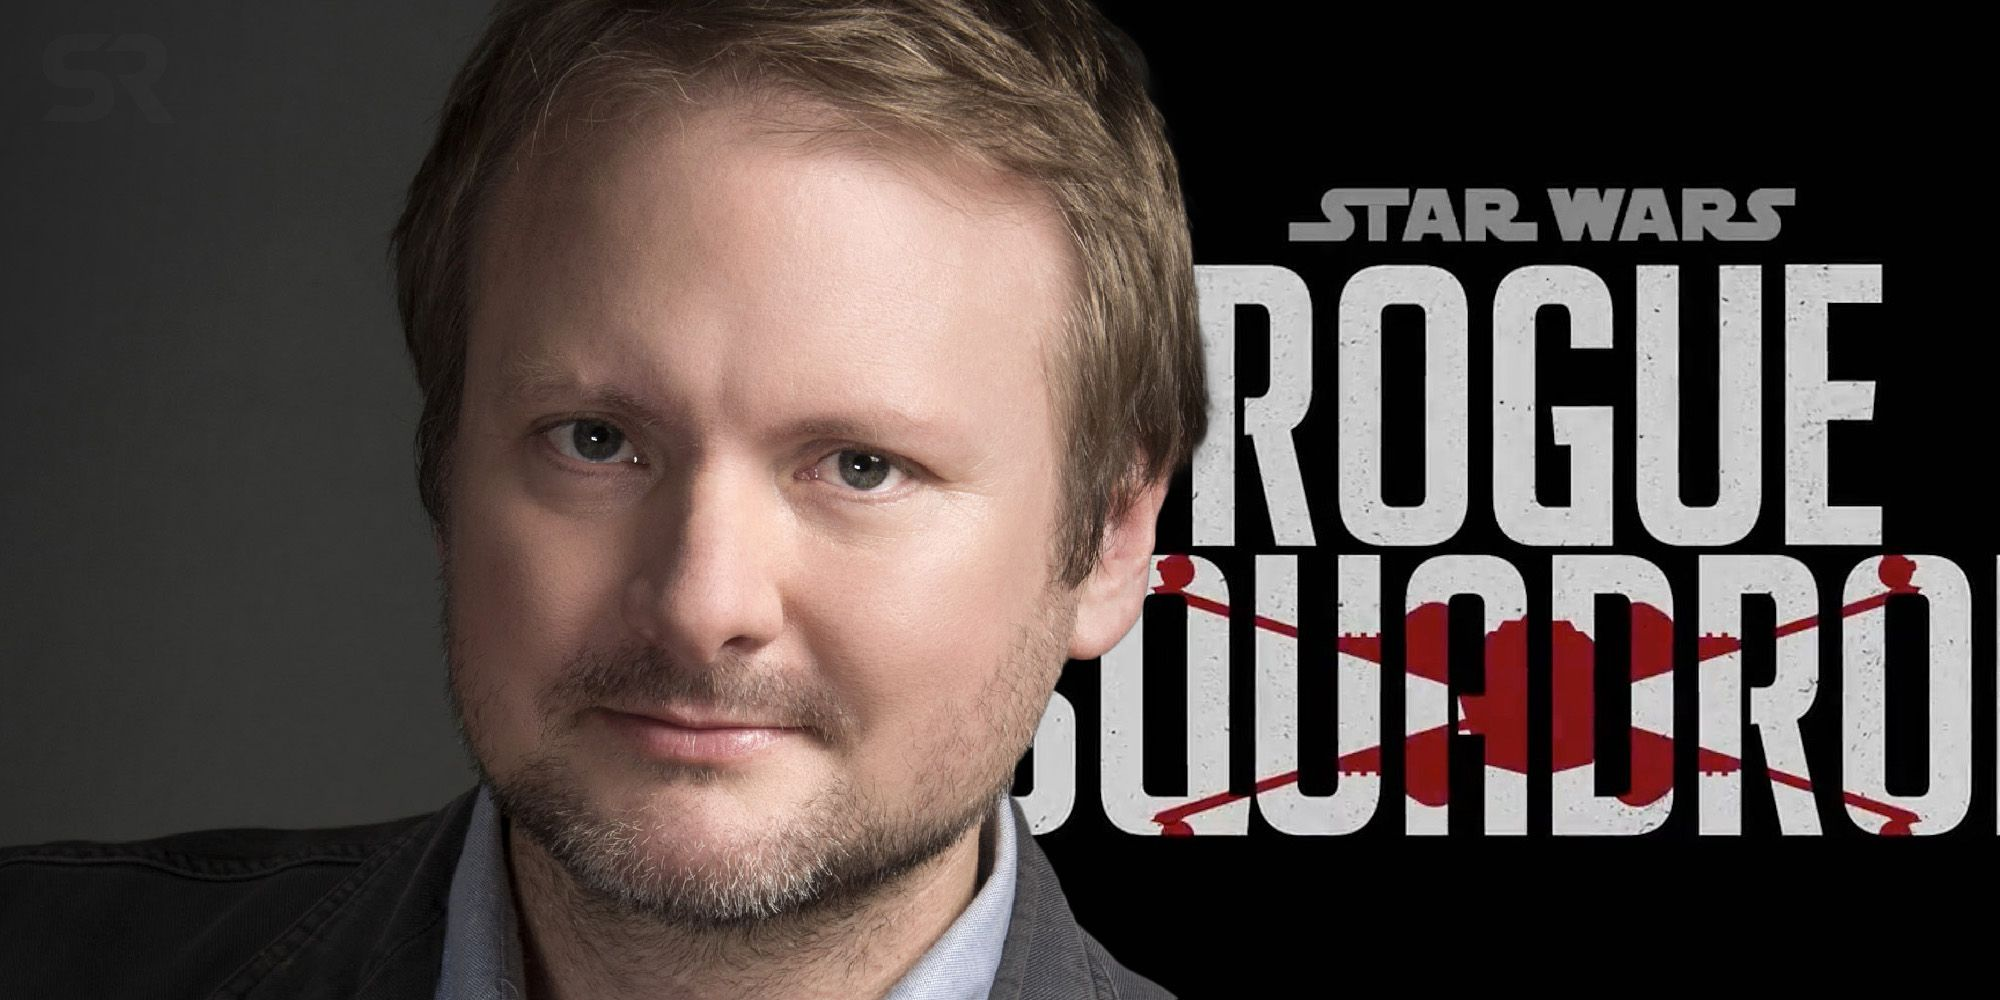 Star Wars' Movie Announcements Are More Bad News For Rian Johnson's Trilogy